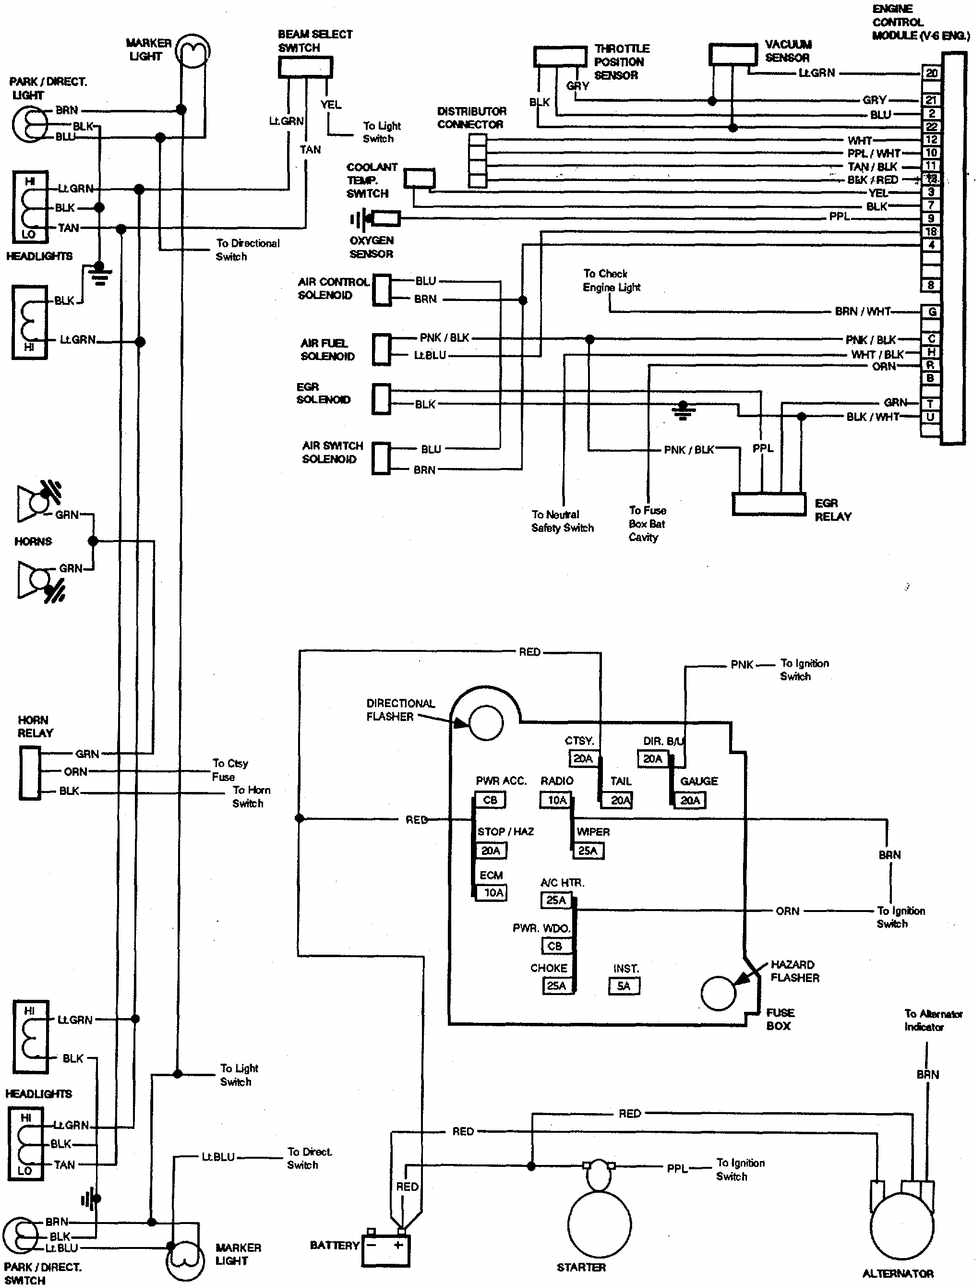 gm truck wiring diagrams gm wiring diagrams